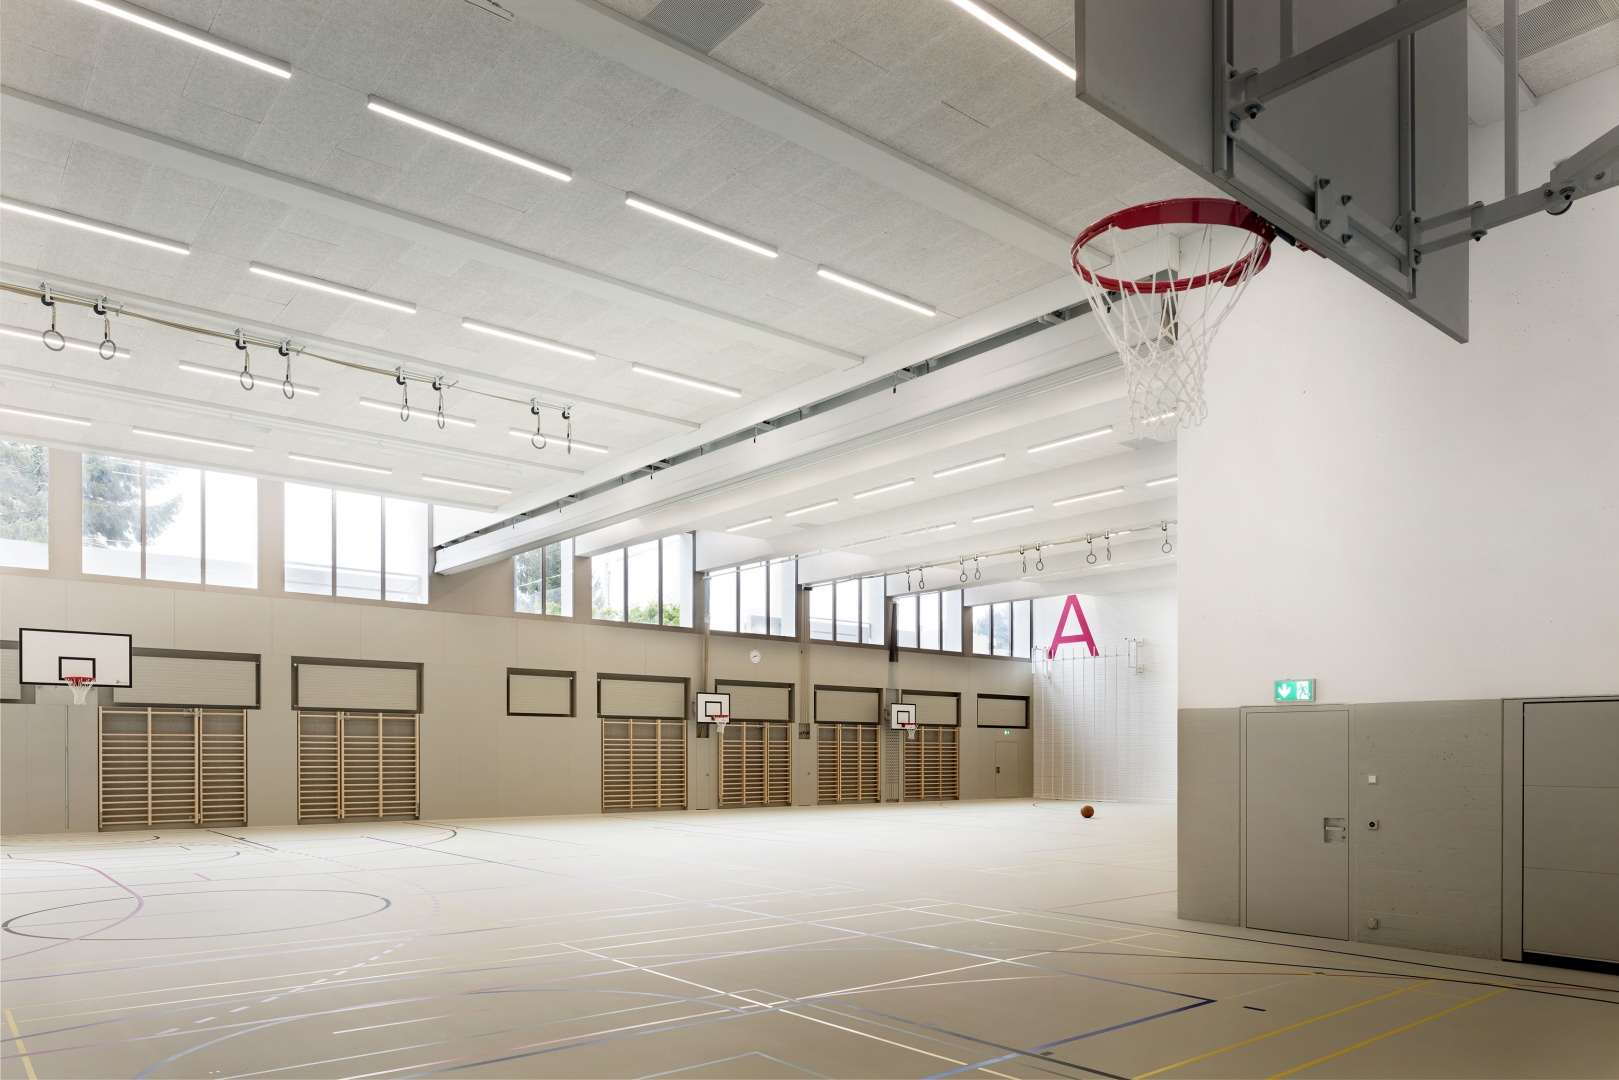 Turnhalle © Lucas Peter